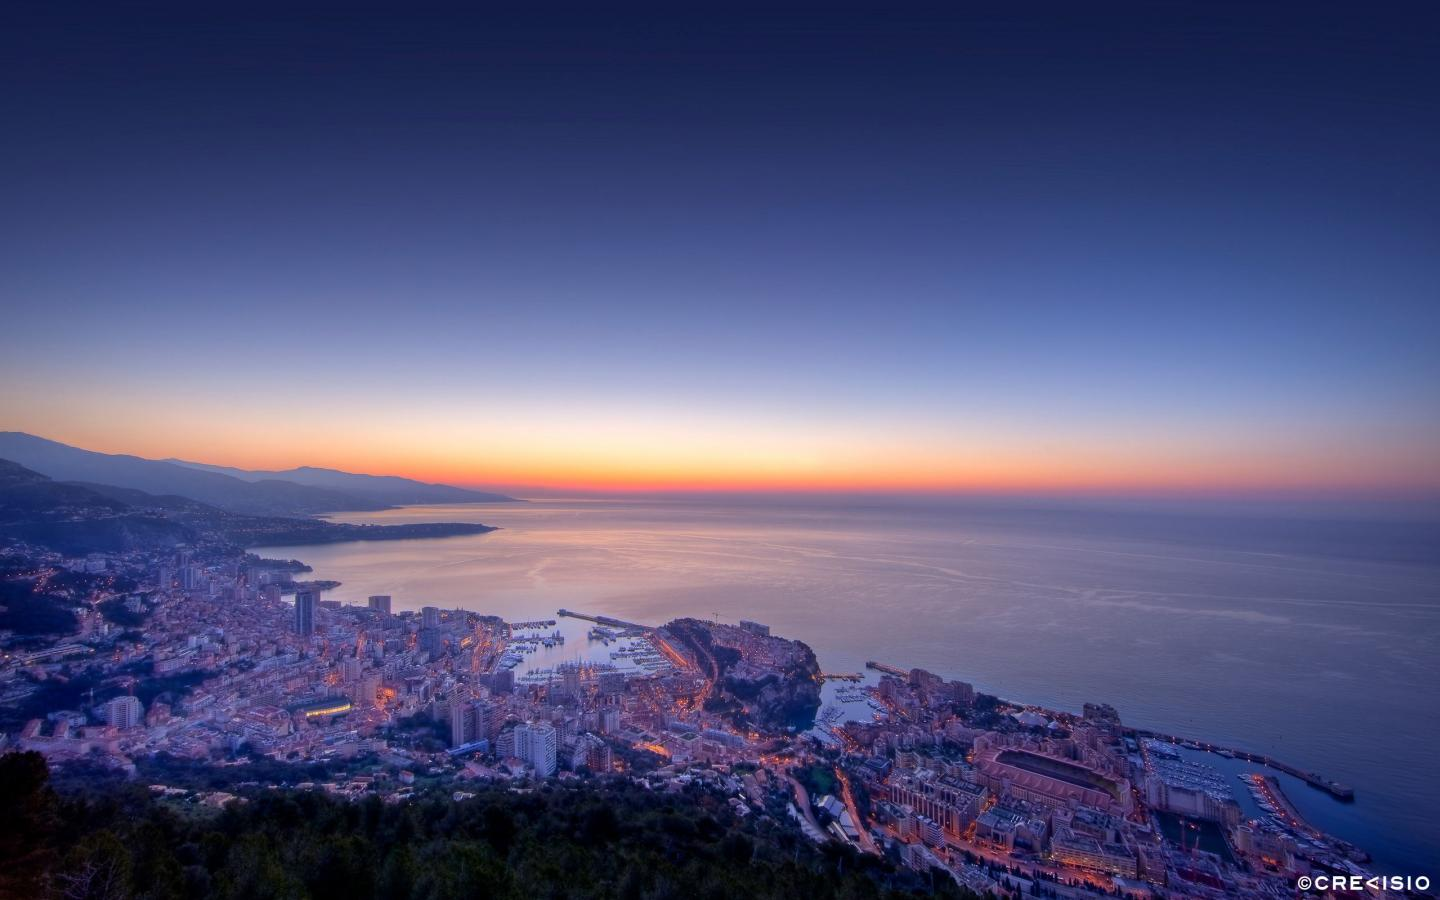 Morning Twilight Monaco by Crevisio